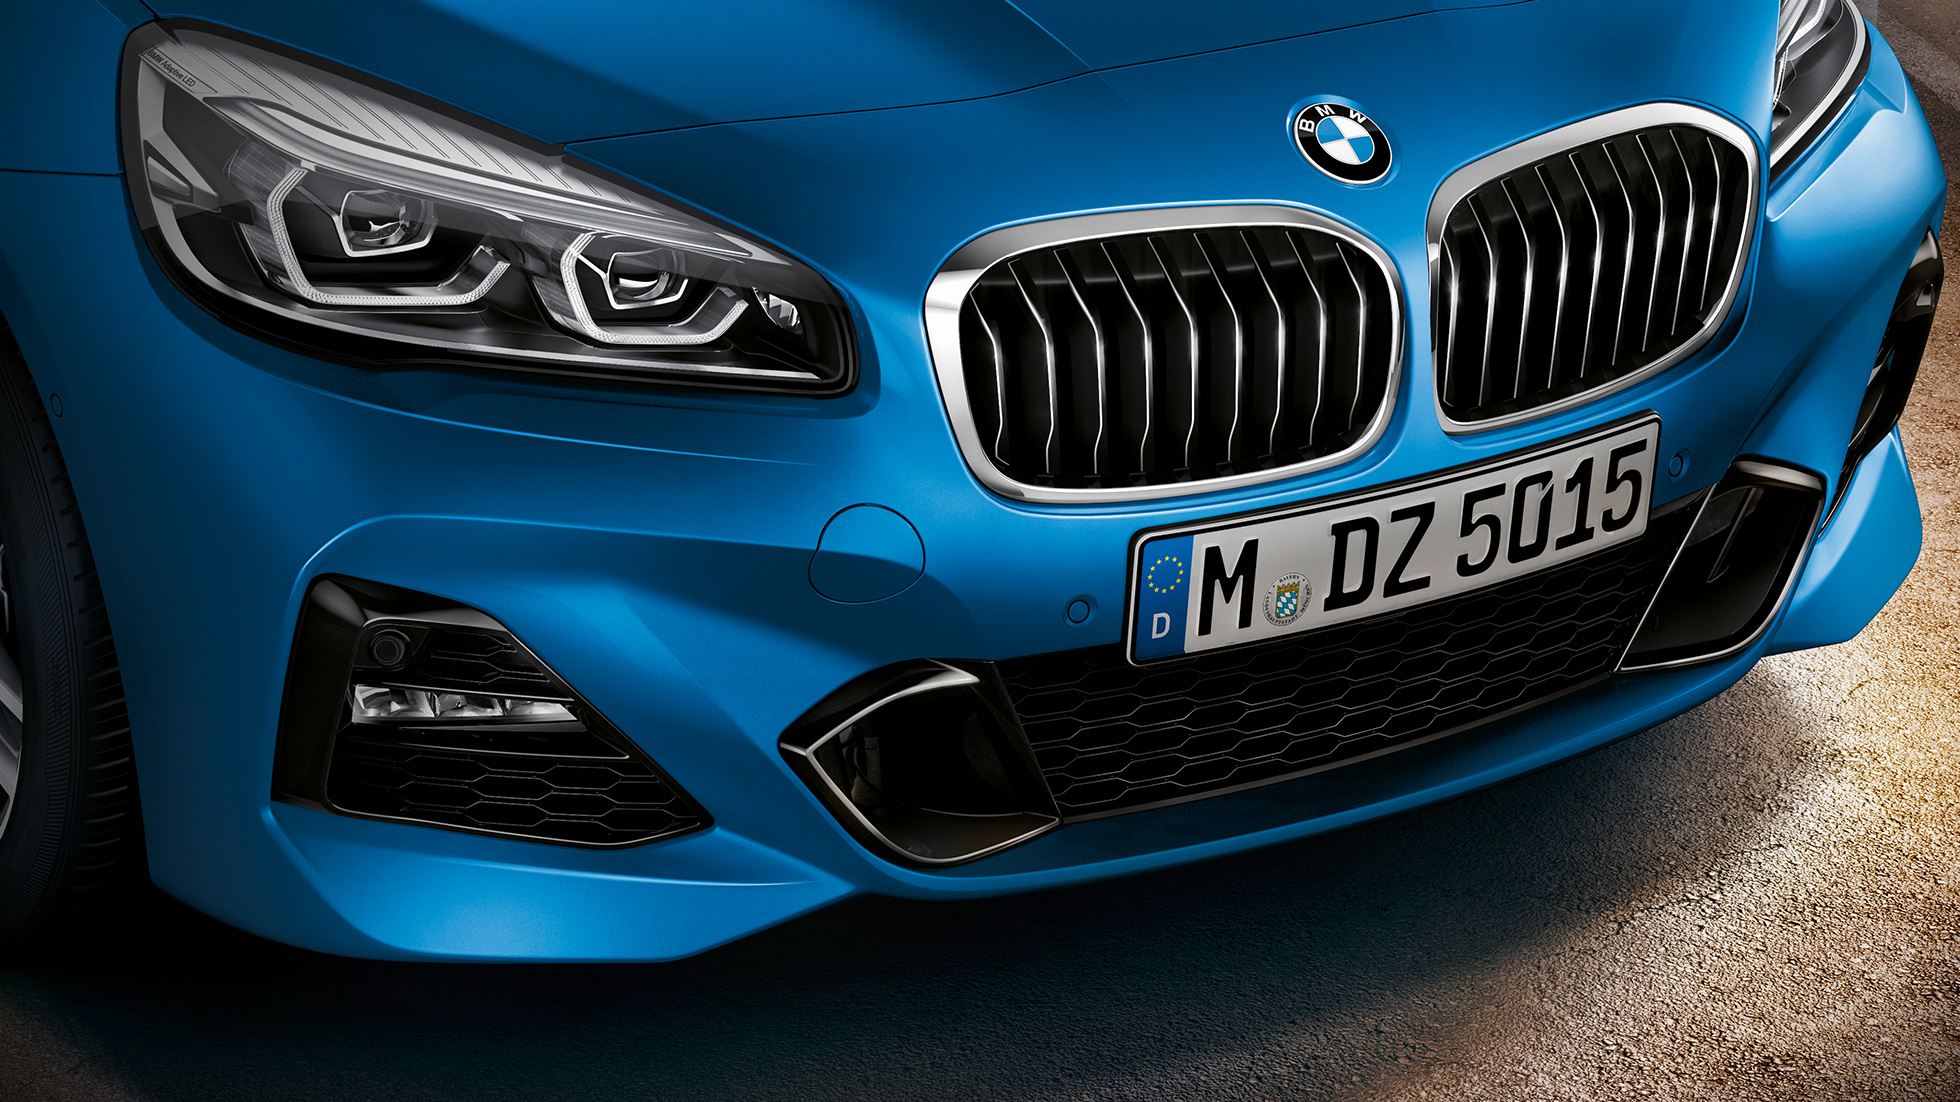 Double kidney grille BMW 2 Series Gran Tourer F46 2018 Estoril Blau metallic close-up front